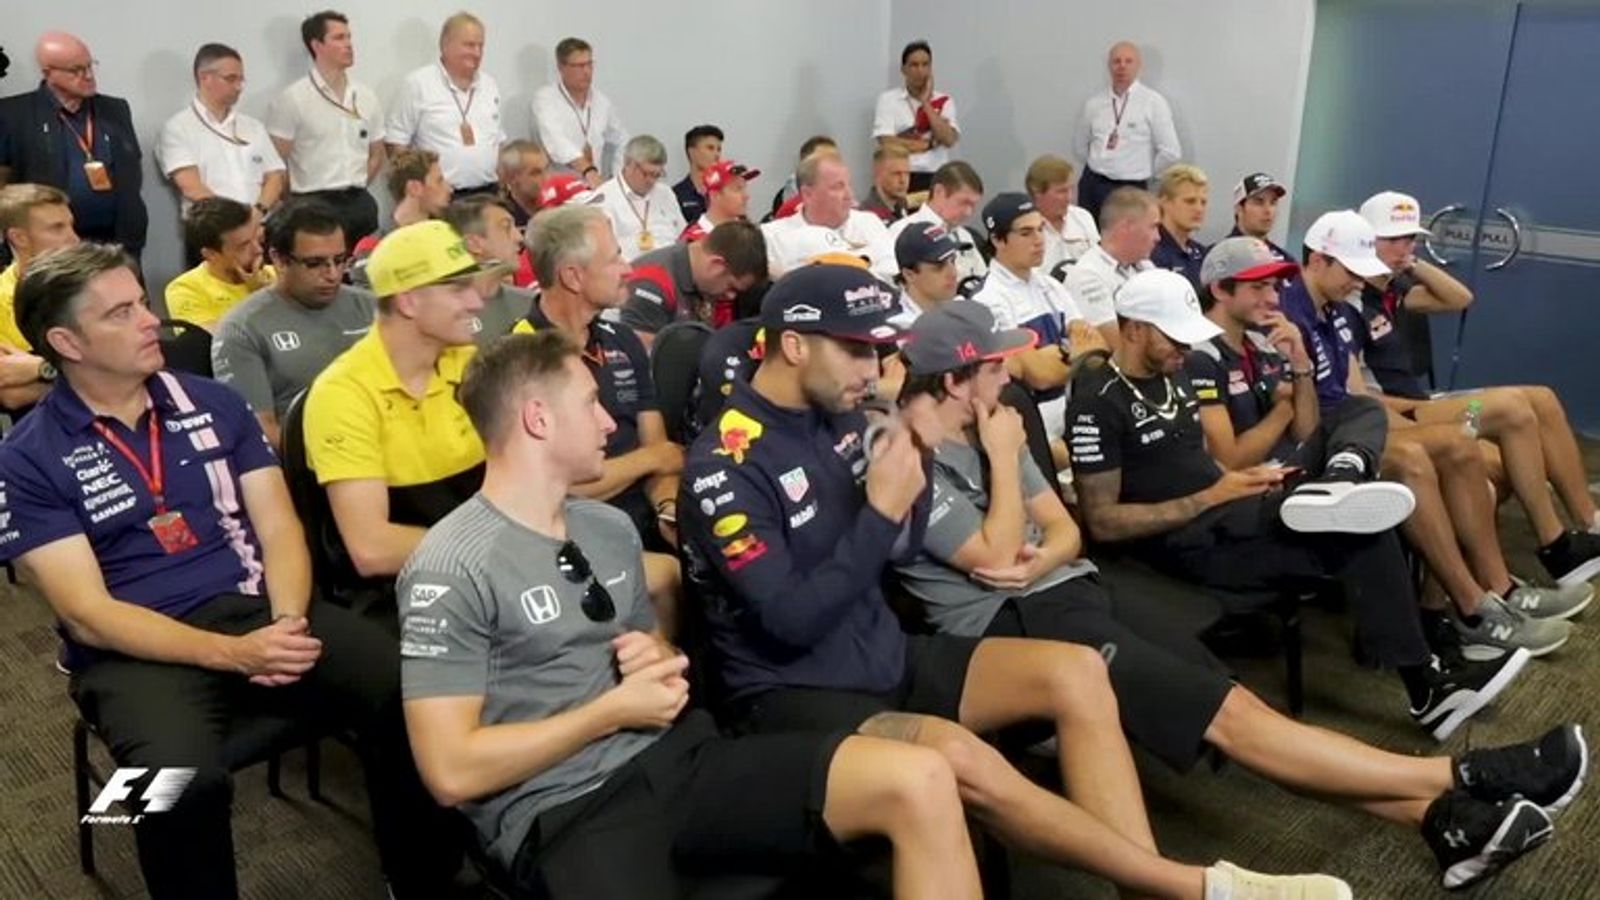 WATCH: Go behind the scenes of the Malaysia GP F1 driver ...